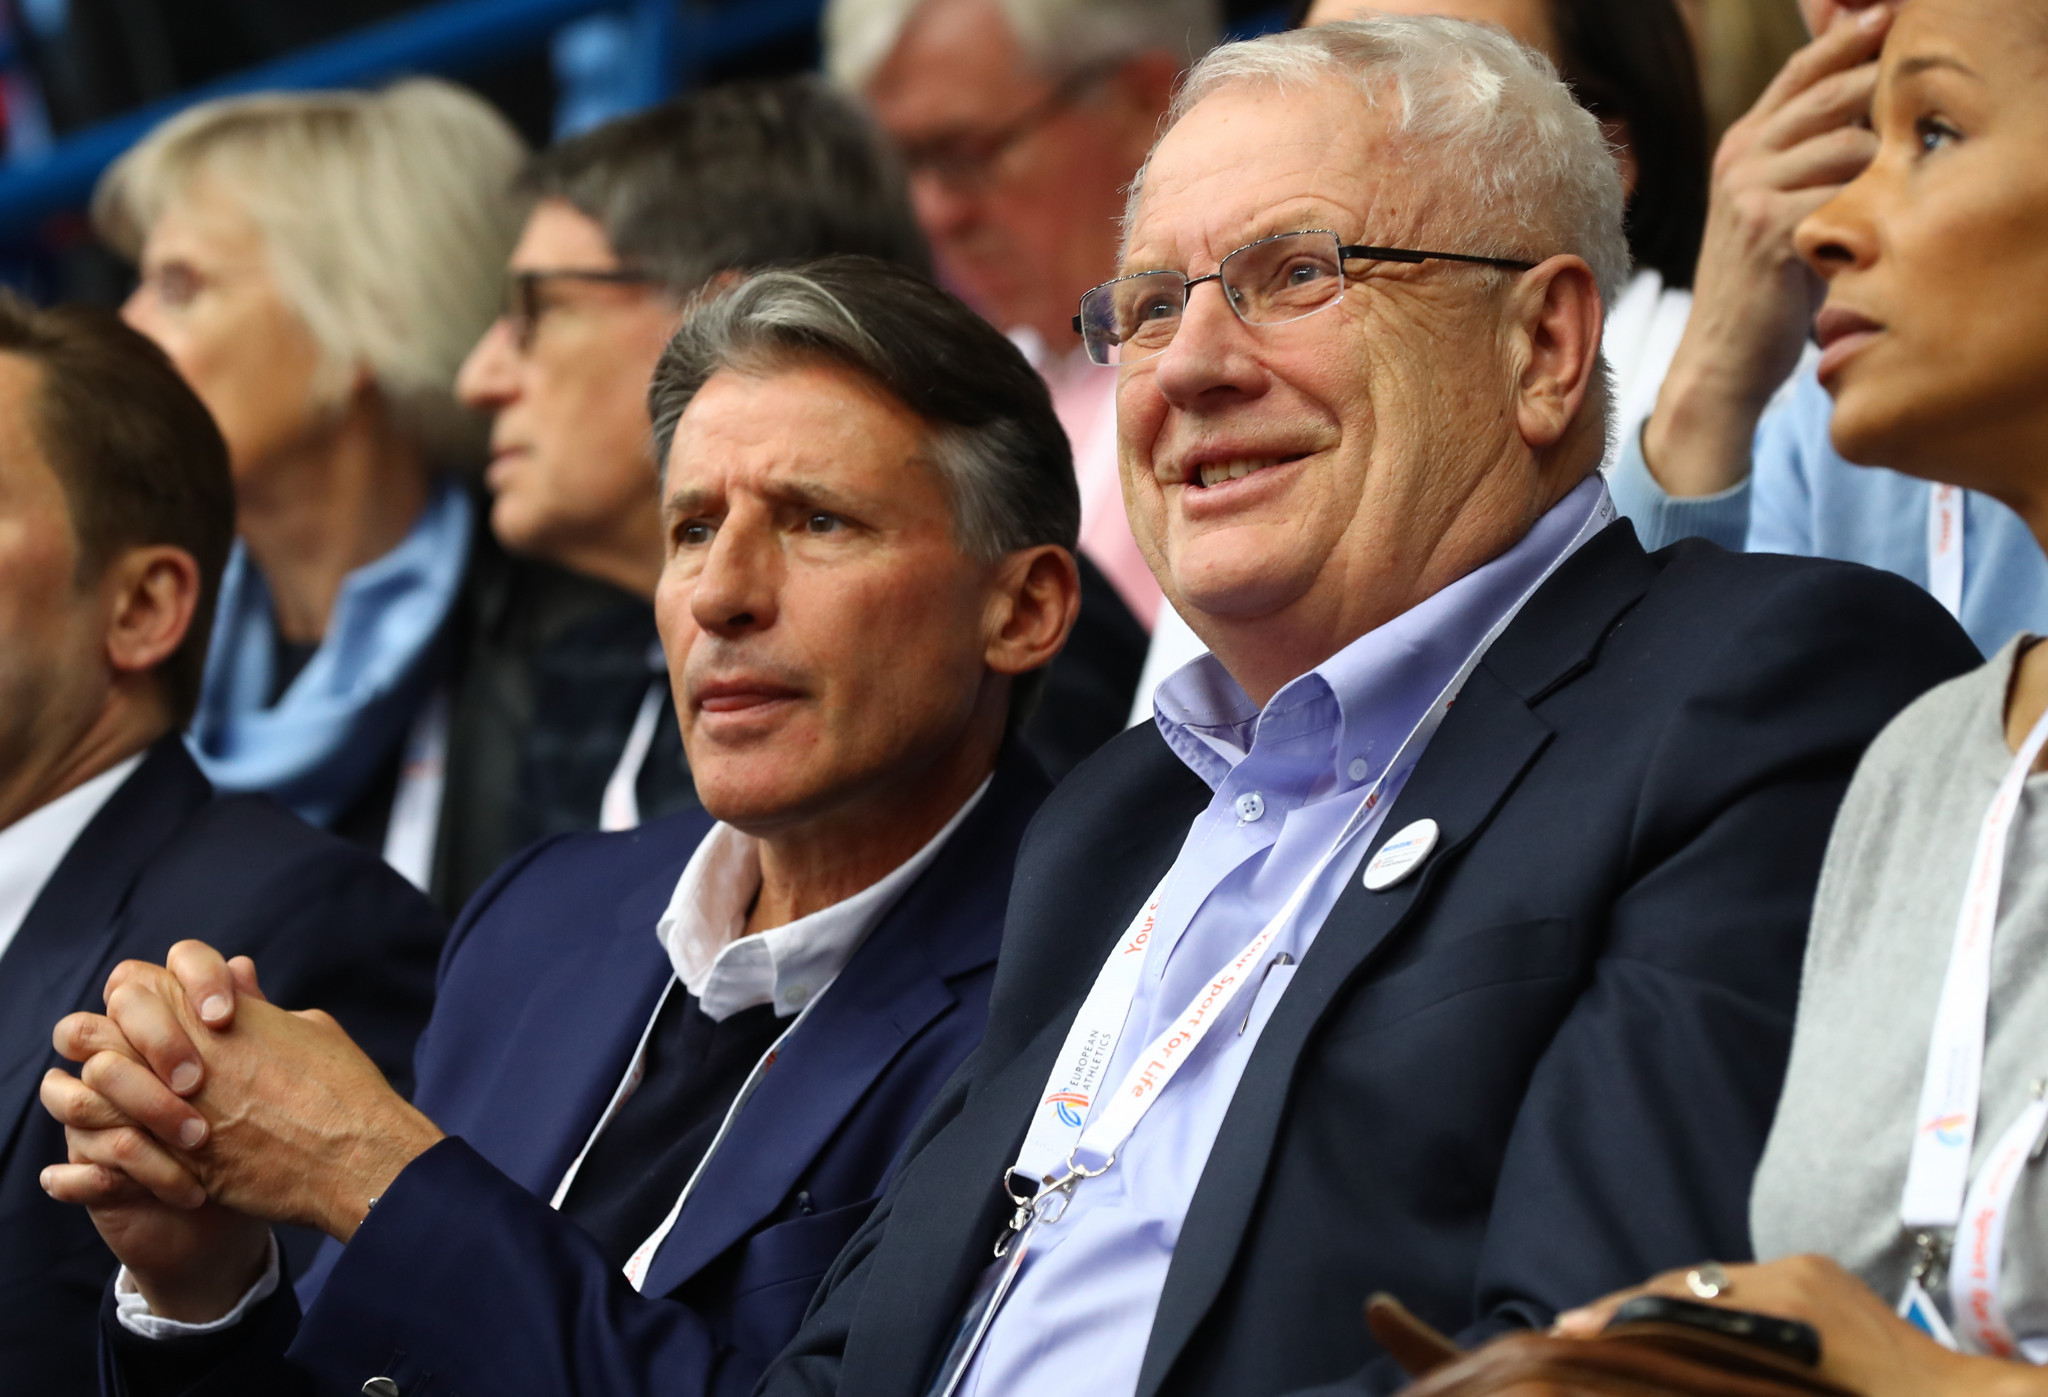 European Athletics President Svein Arne Hansen, who died on Friday, pictured alongside World Athletics President Sebastian Coe watching the sport to which he gave so much of his life ©Getty Images